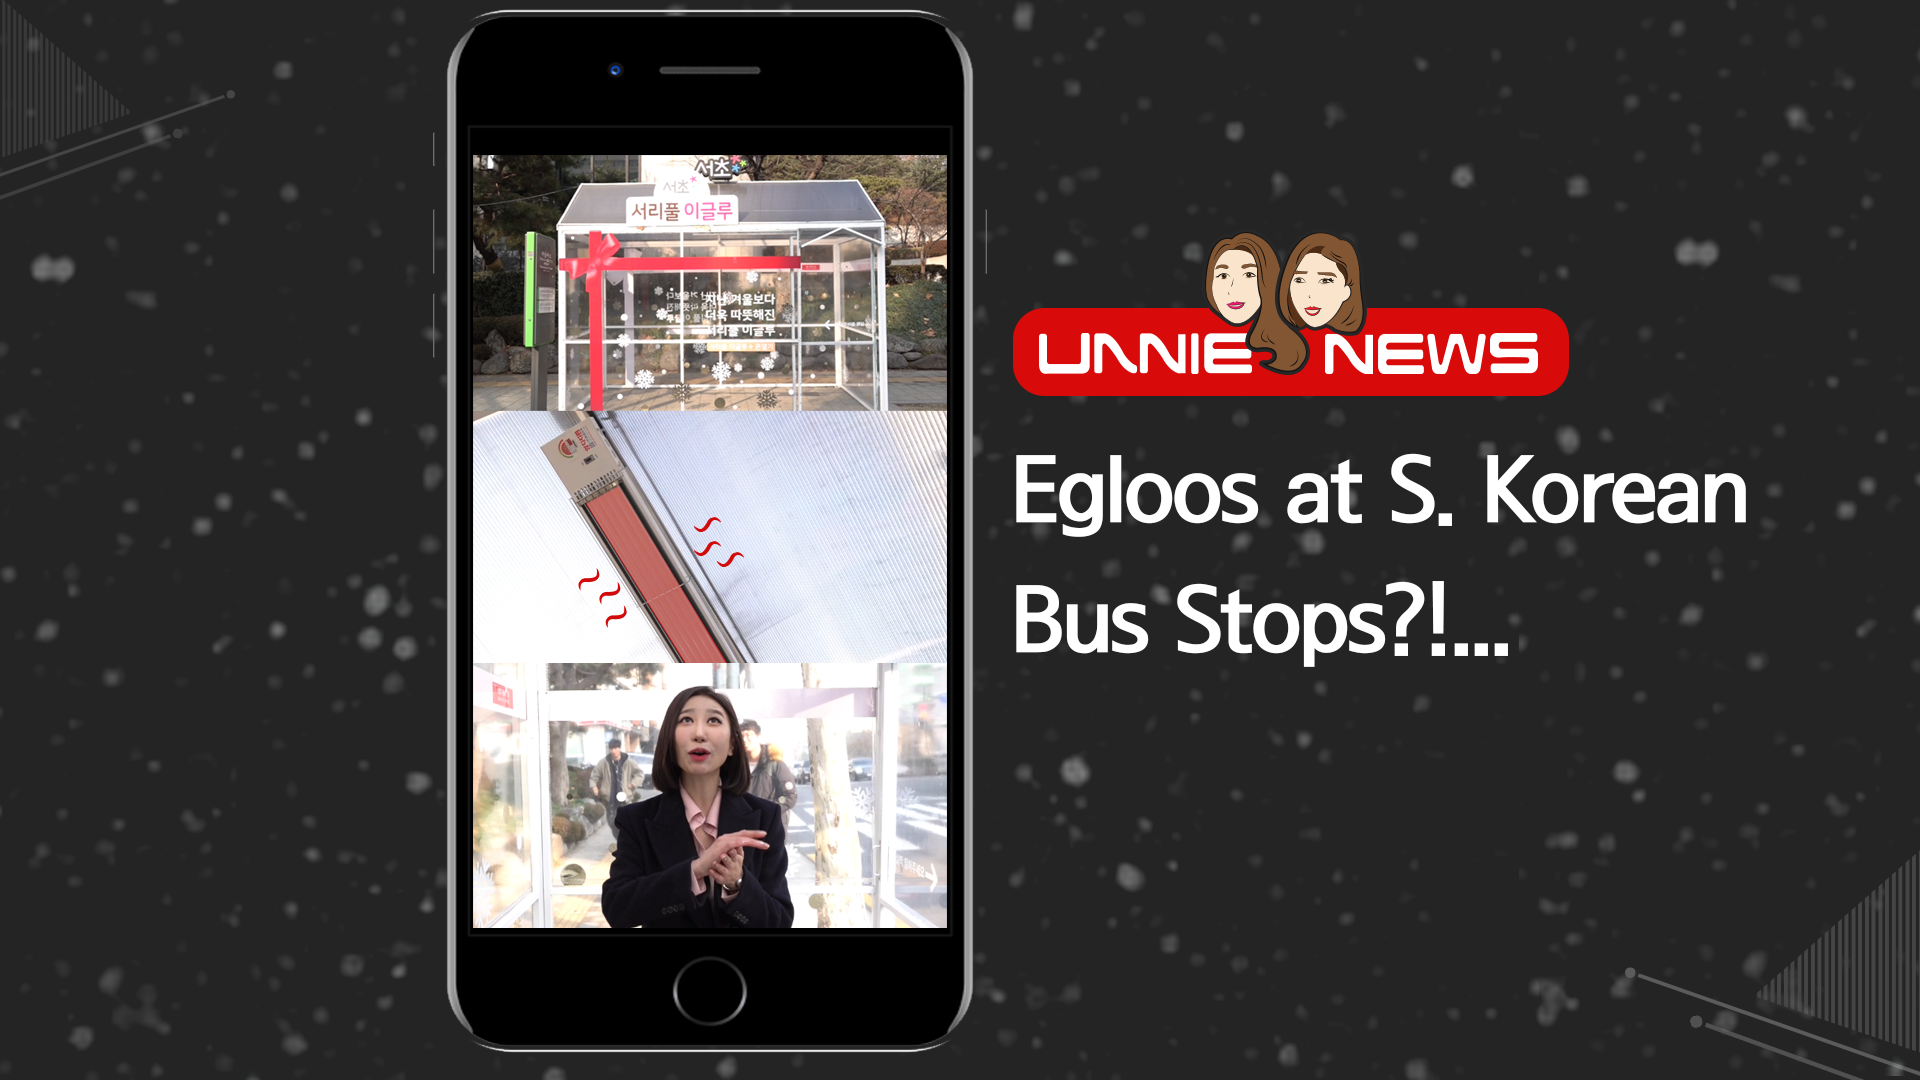 [UNNIE NEWS] Egloos at S. Korean Bus Stops?!...